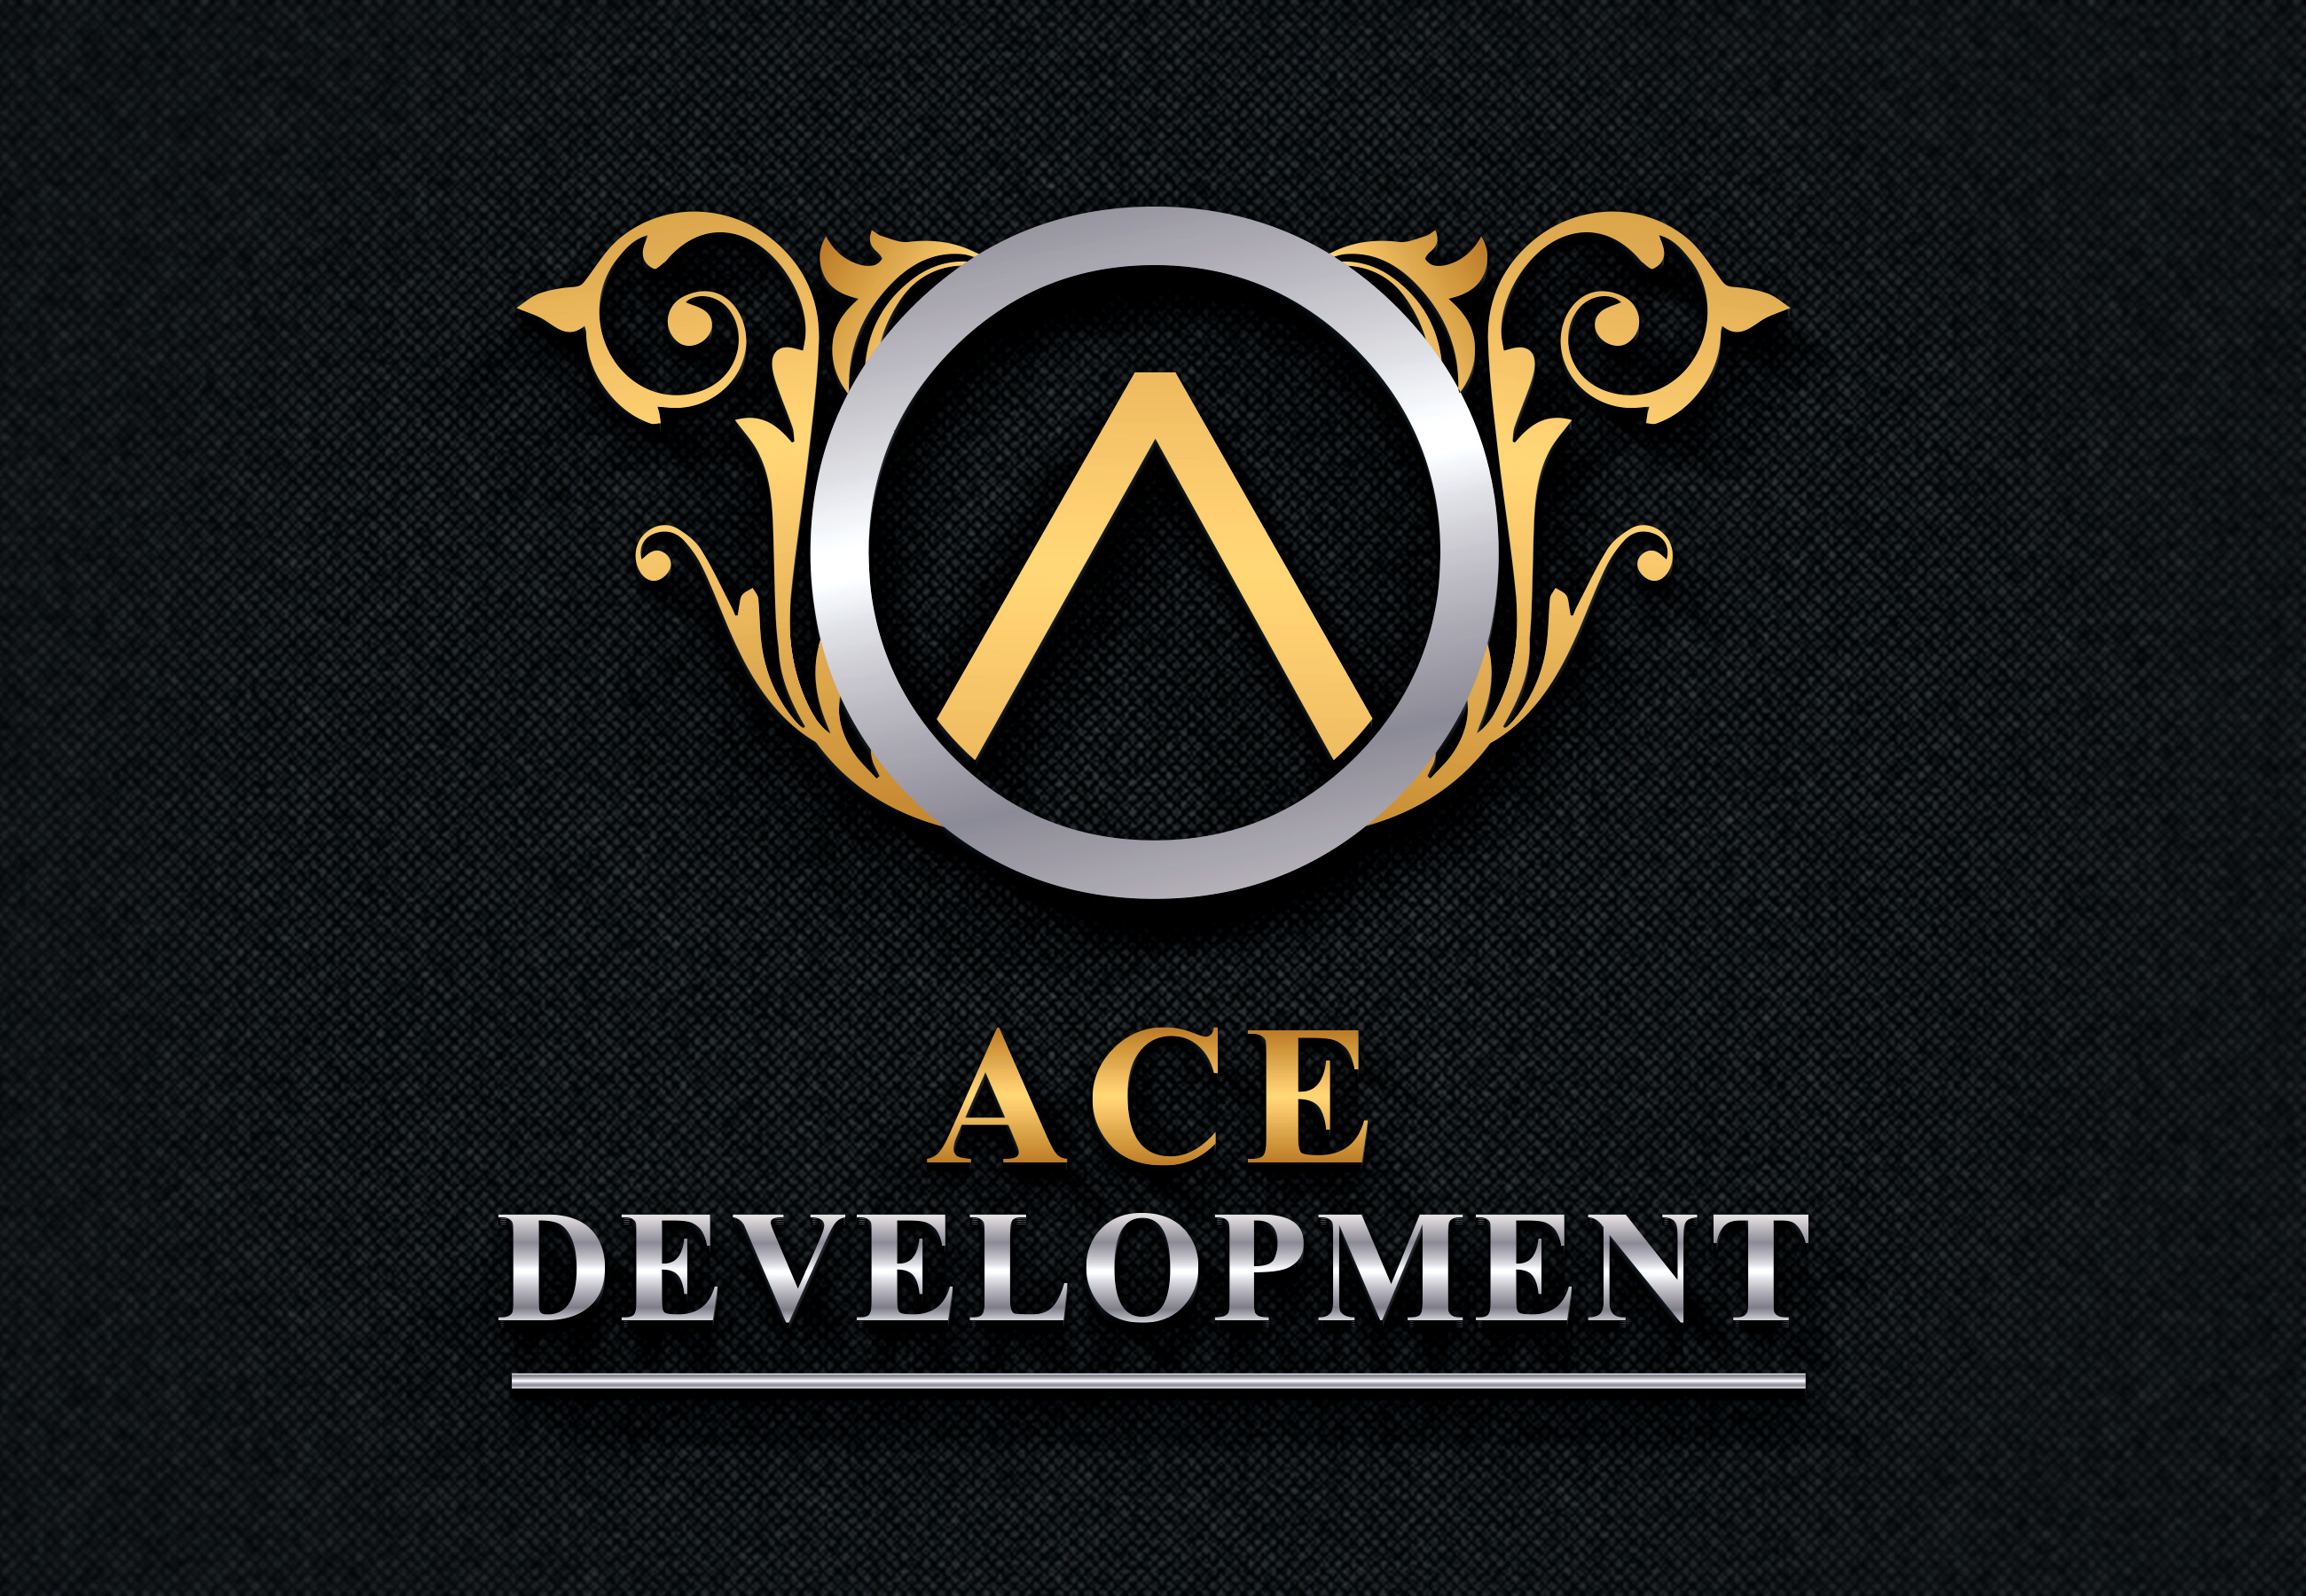 Logo Design by Umair ahmed Iqbal - Entry No. 104 in the Logo Design Contest Fun Logo Design for Ace development.